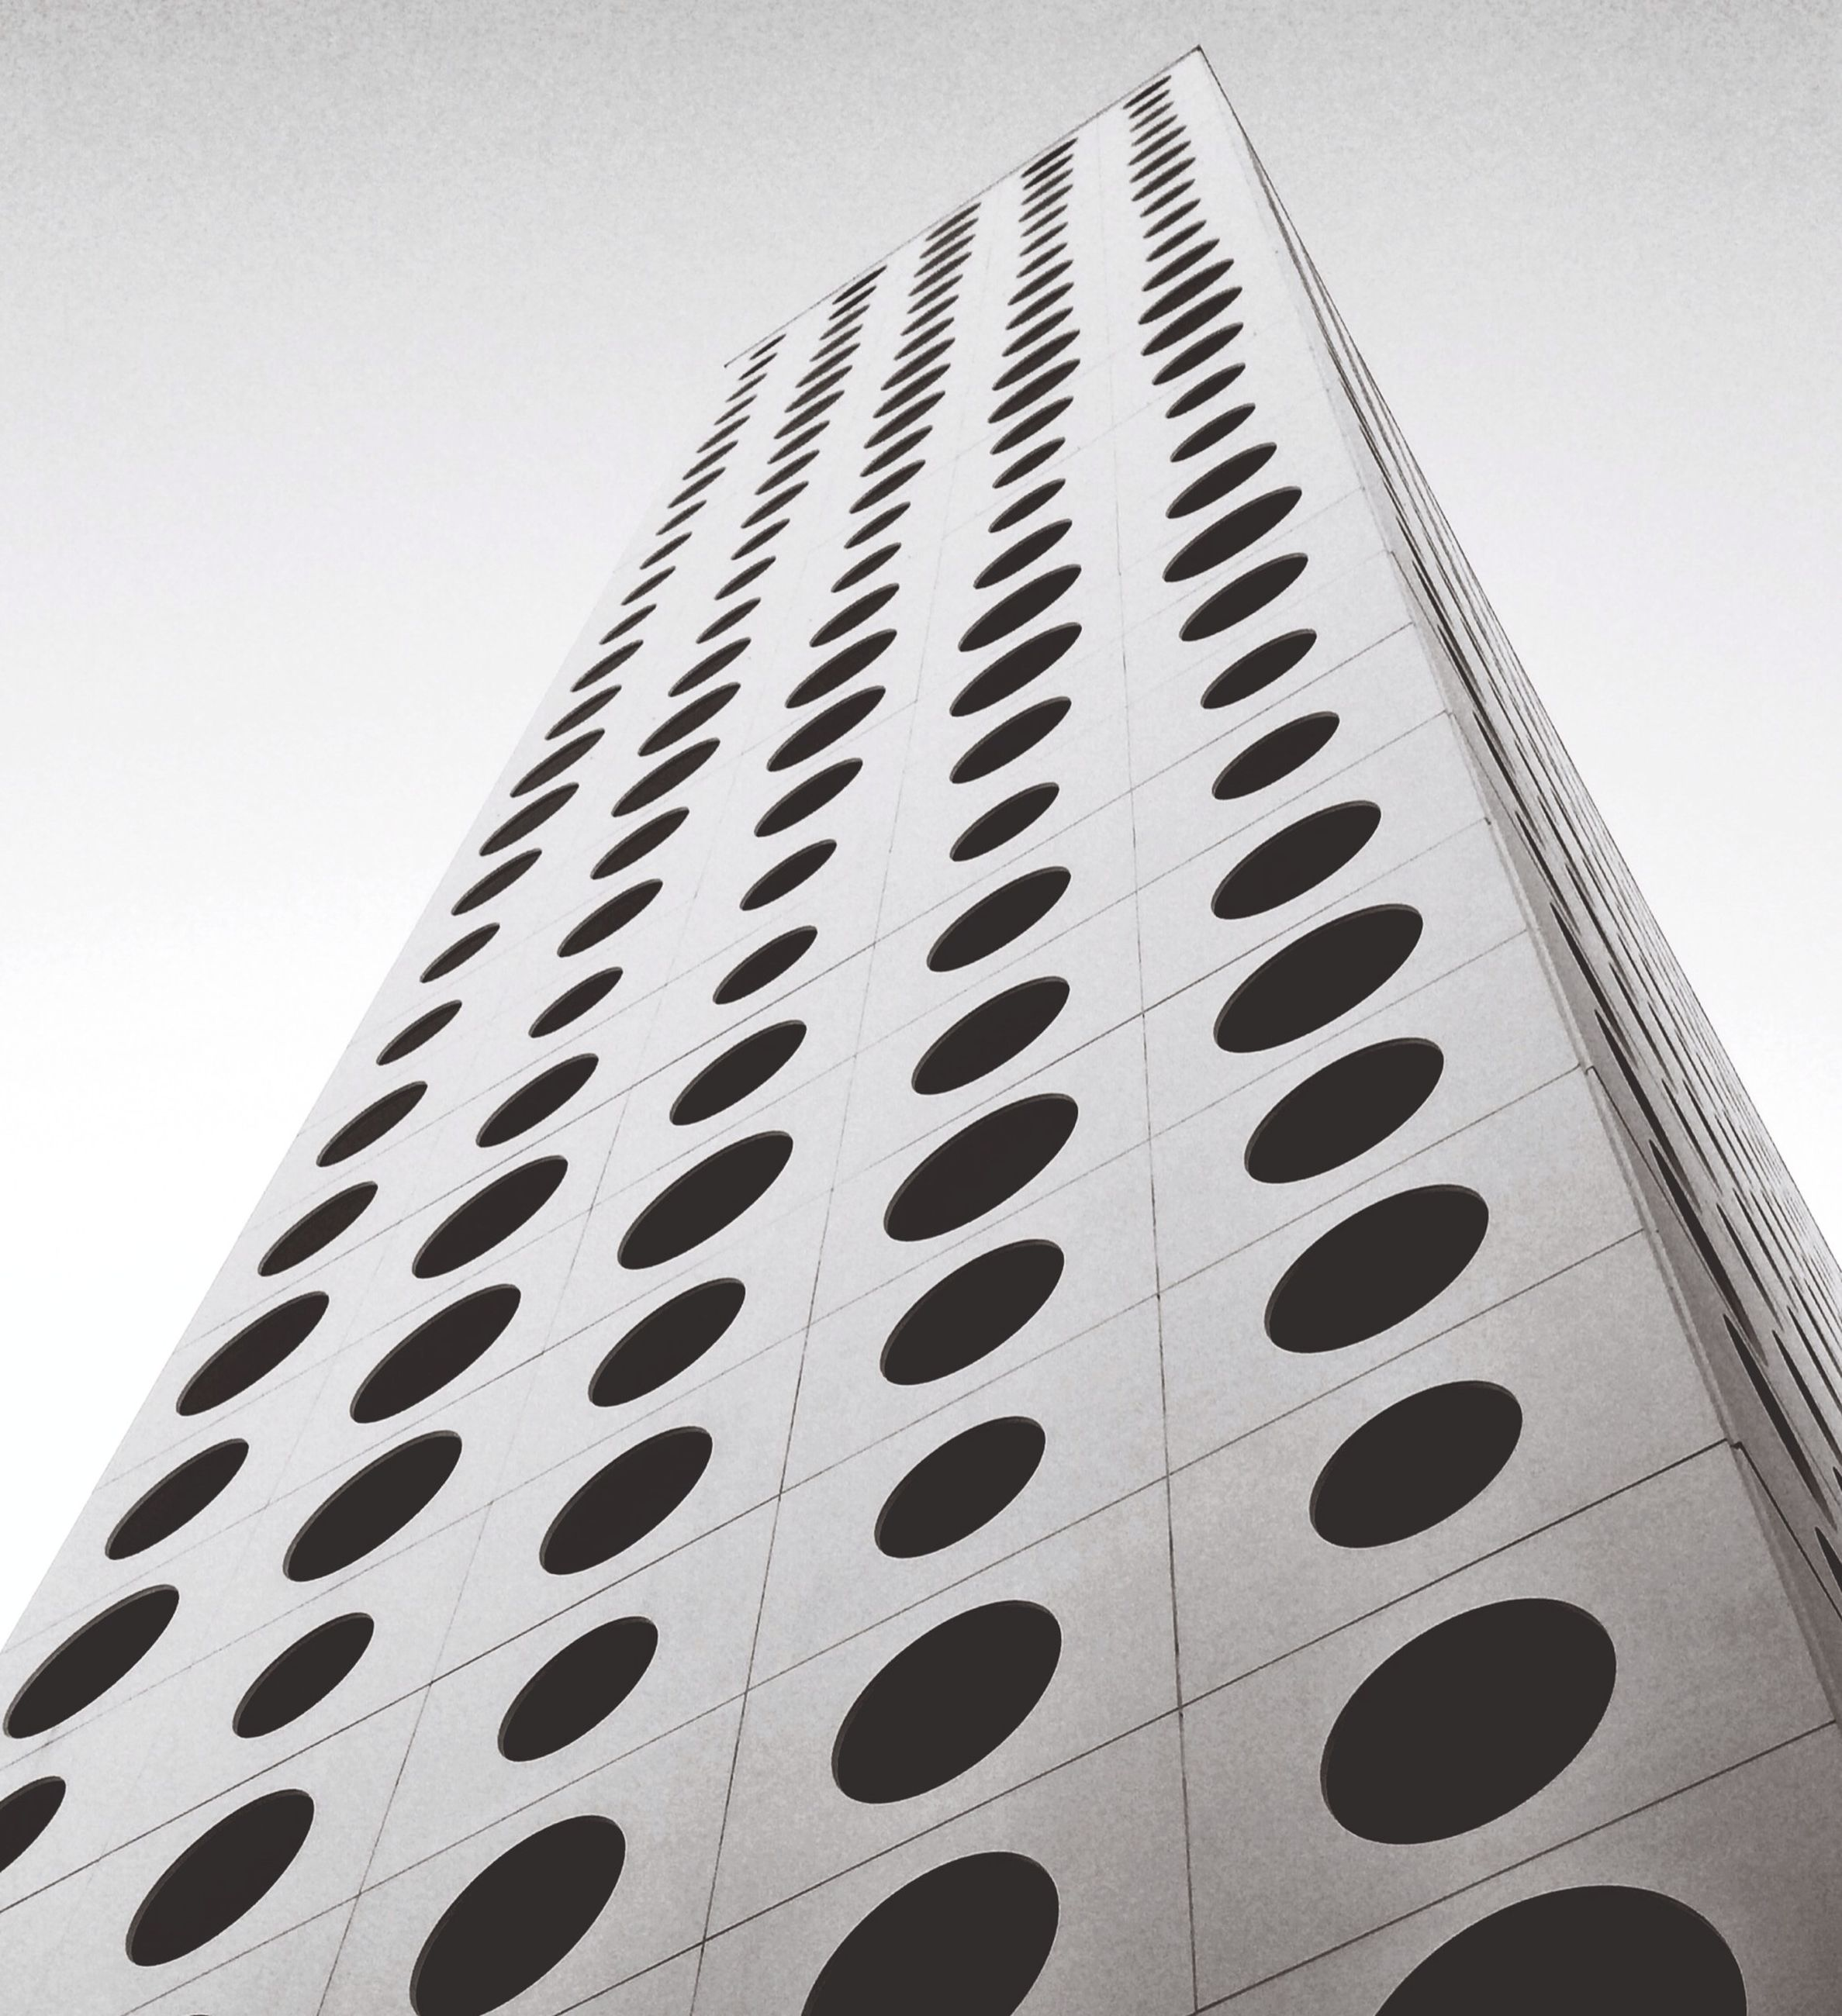 low angle view, architecture, built structure, building exterior, clear sky, building, tall - high, modern, office building, tower, sky, city, skyscraper, pattern, window, day, no people, outdoors, tall, directly below